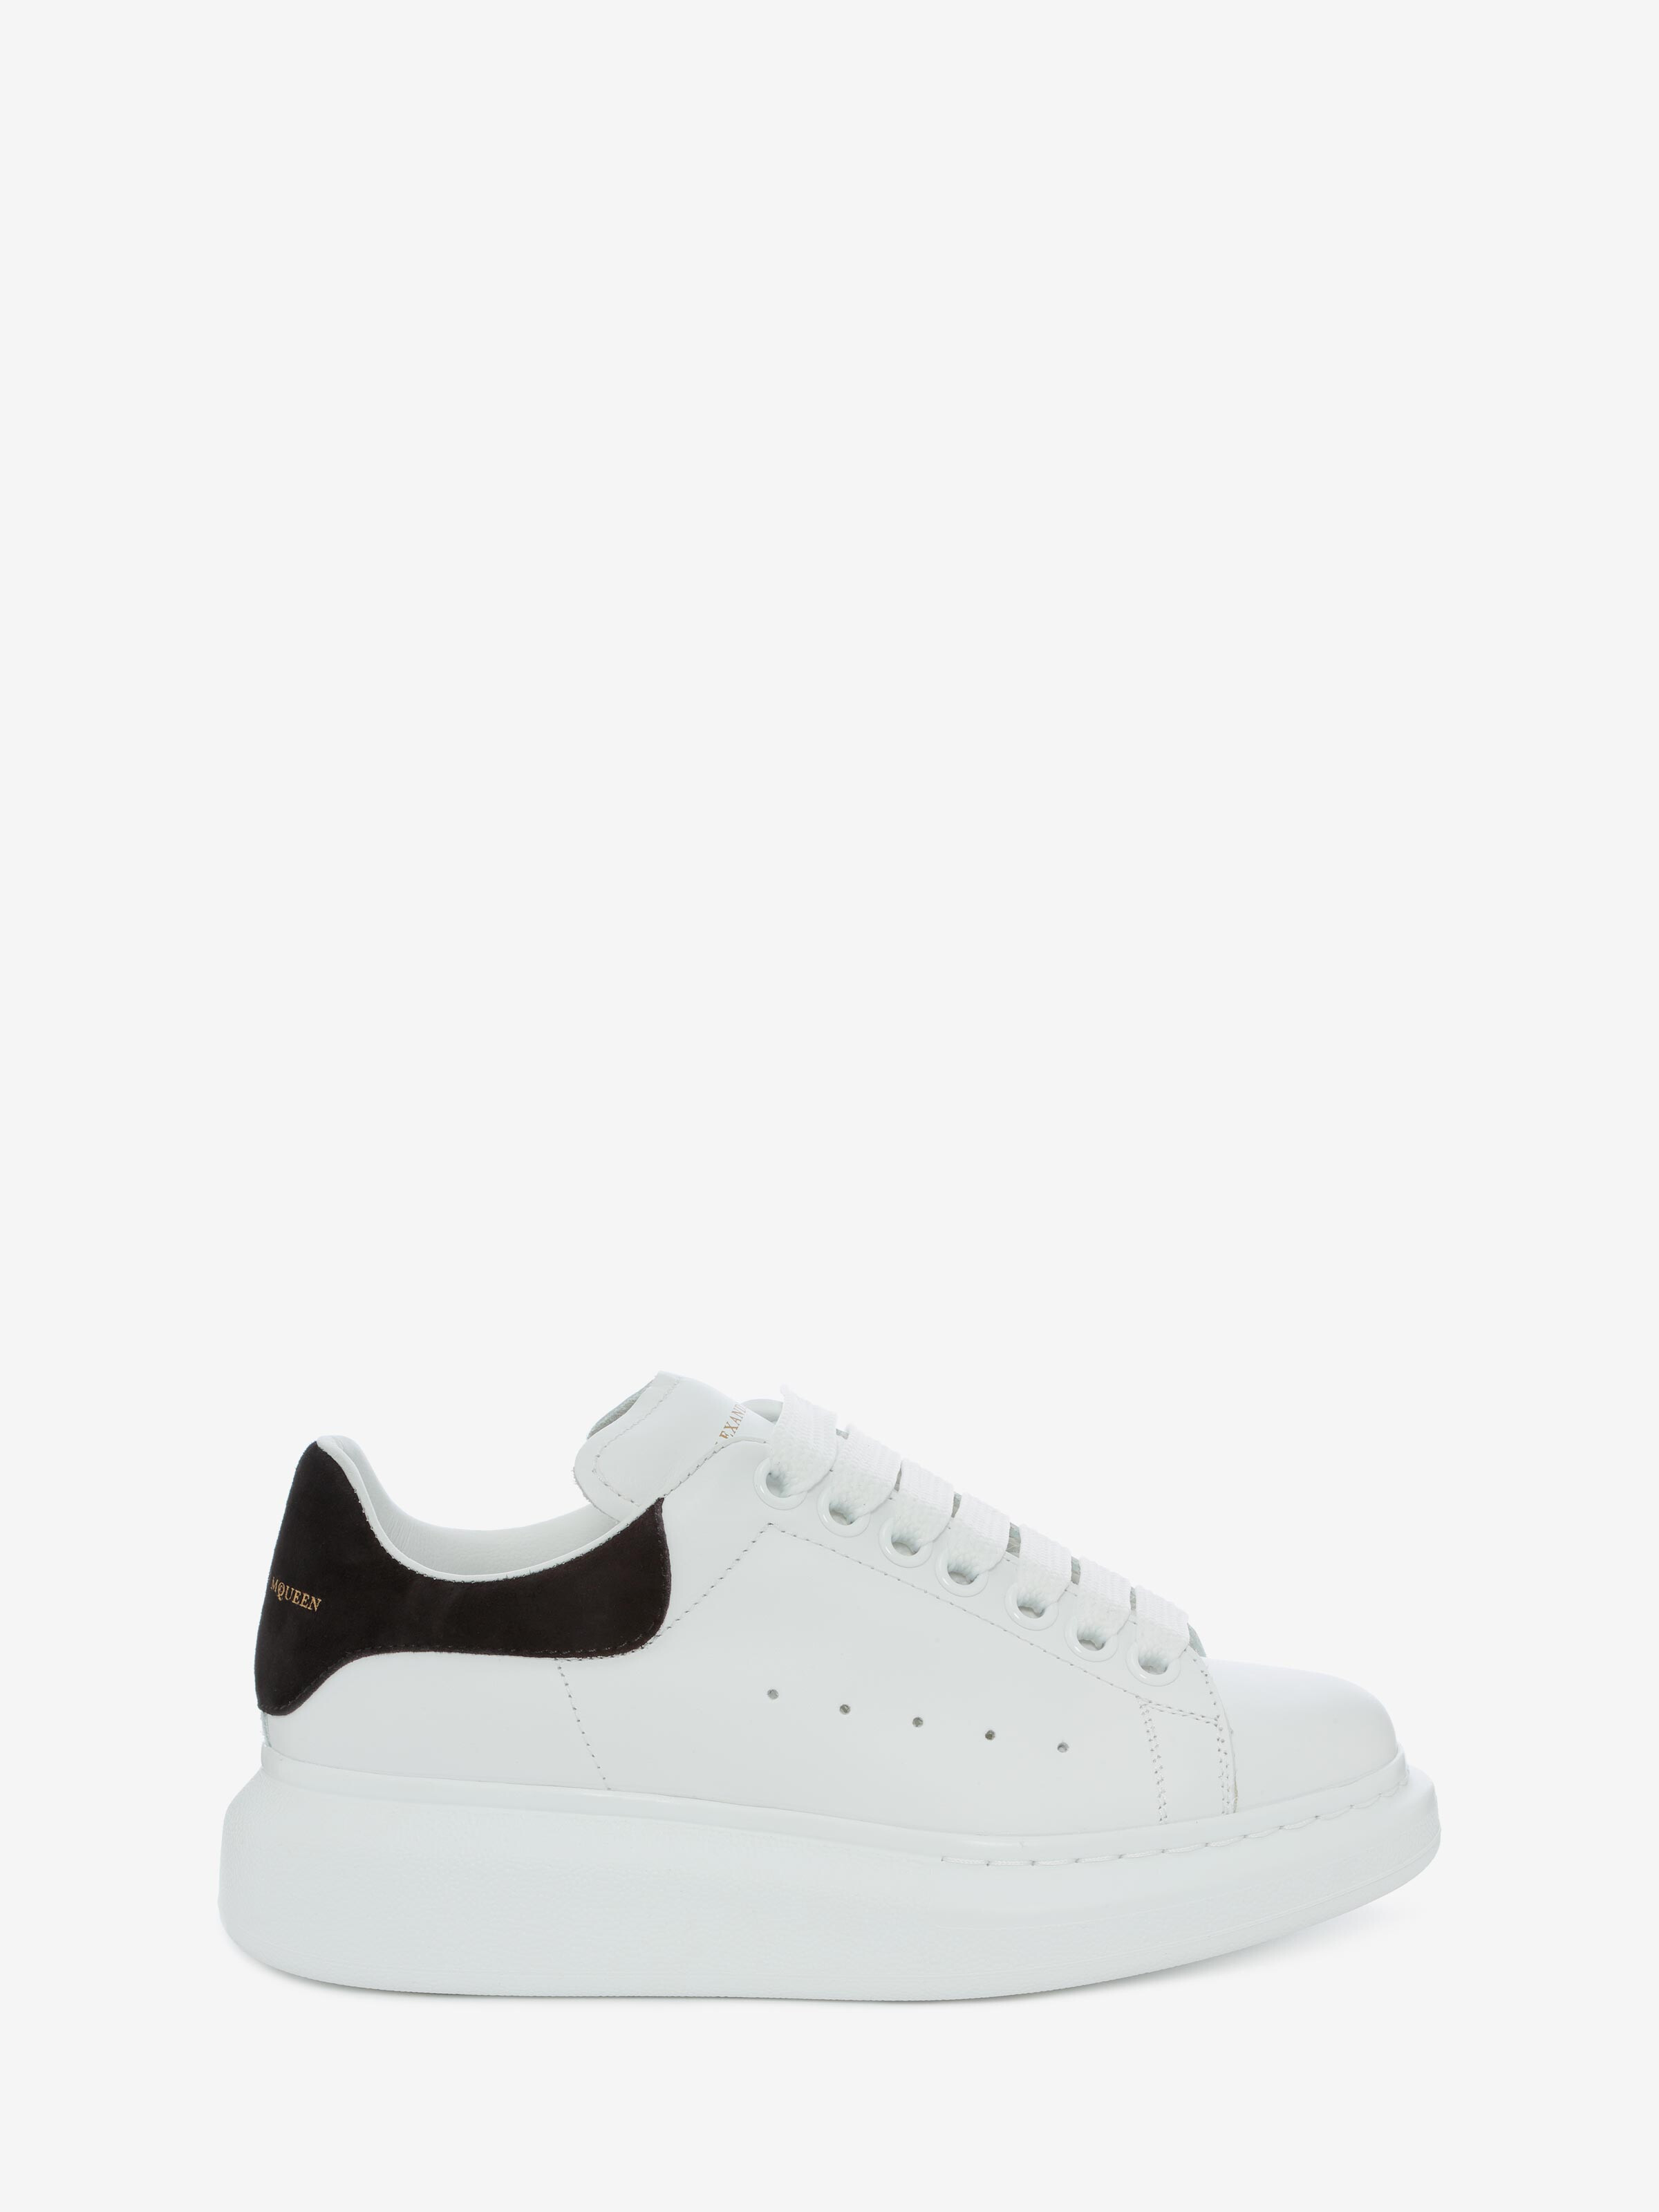 Alexander Mcqueen Low-top Sneakers Larry Calfskin Logo Black White In Ivory/black